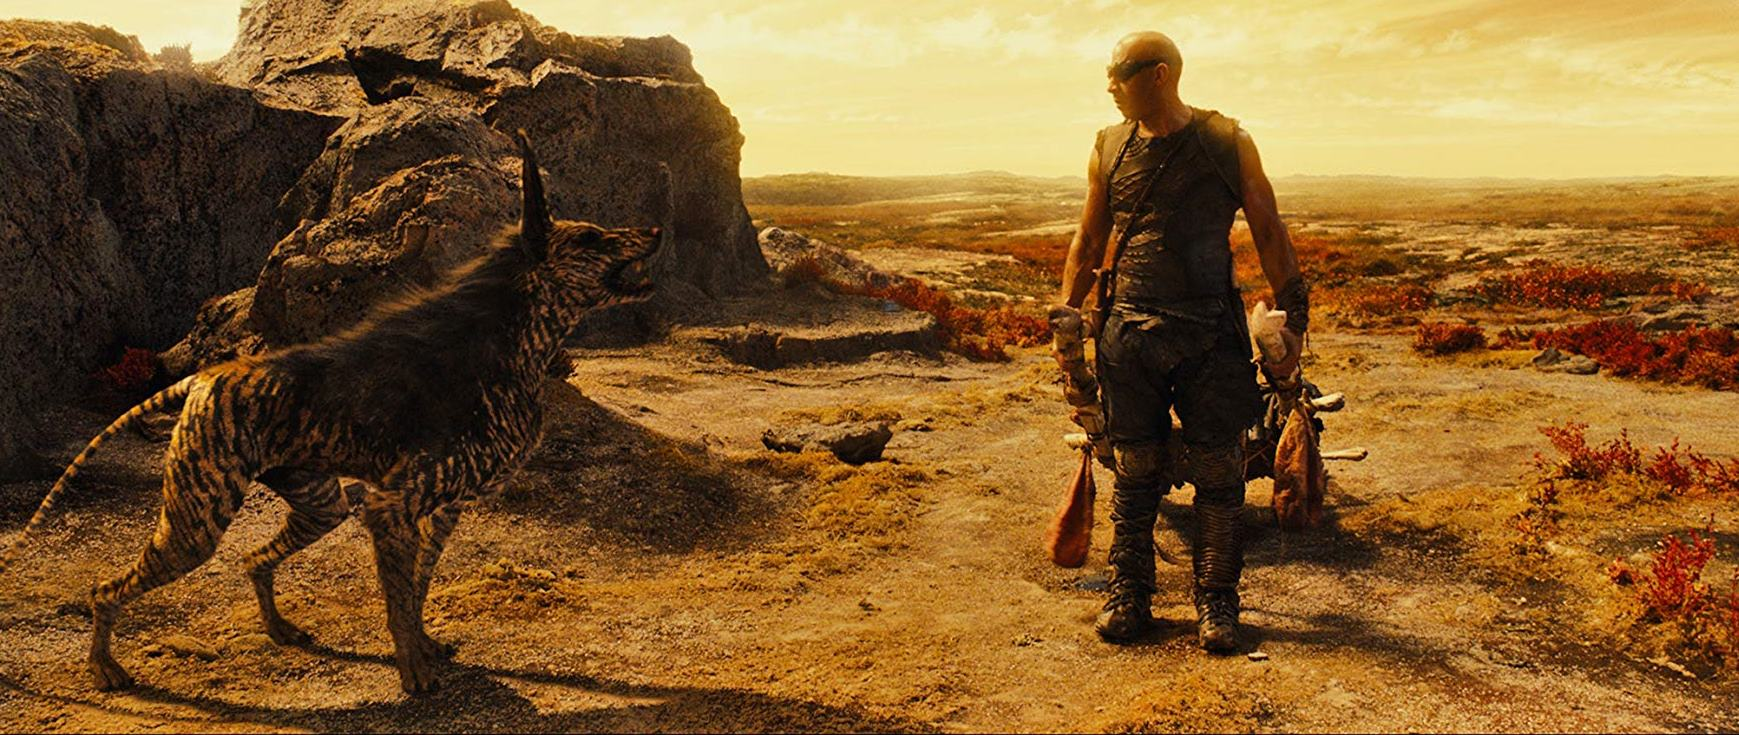 Riddick (Vin Diesel) and alien pet in Riddick (2013)